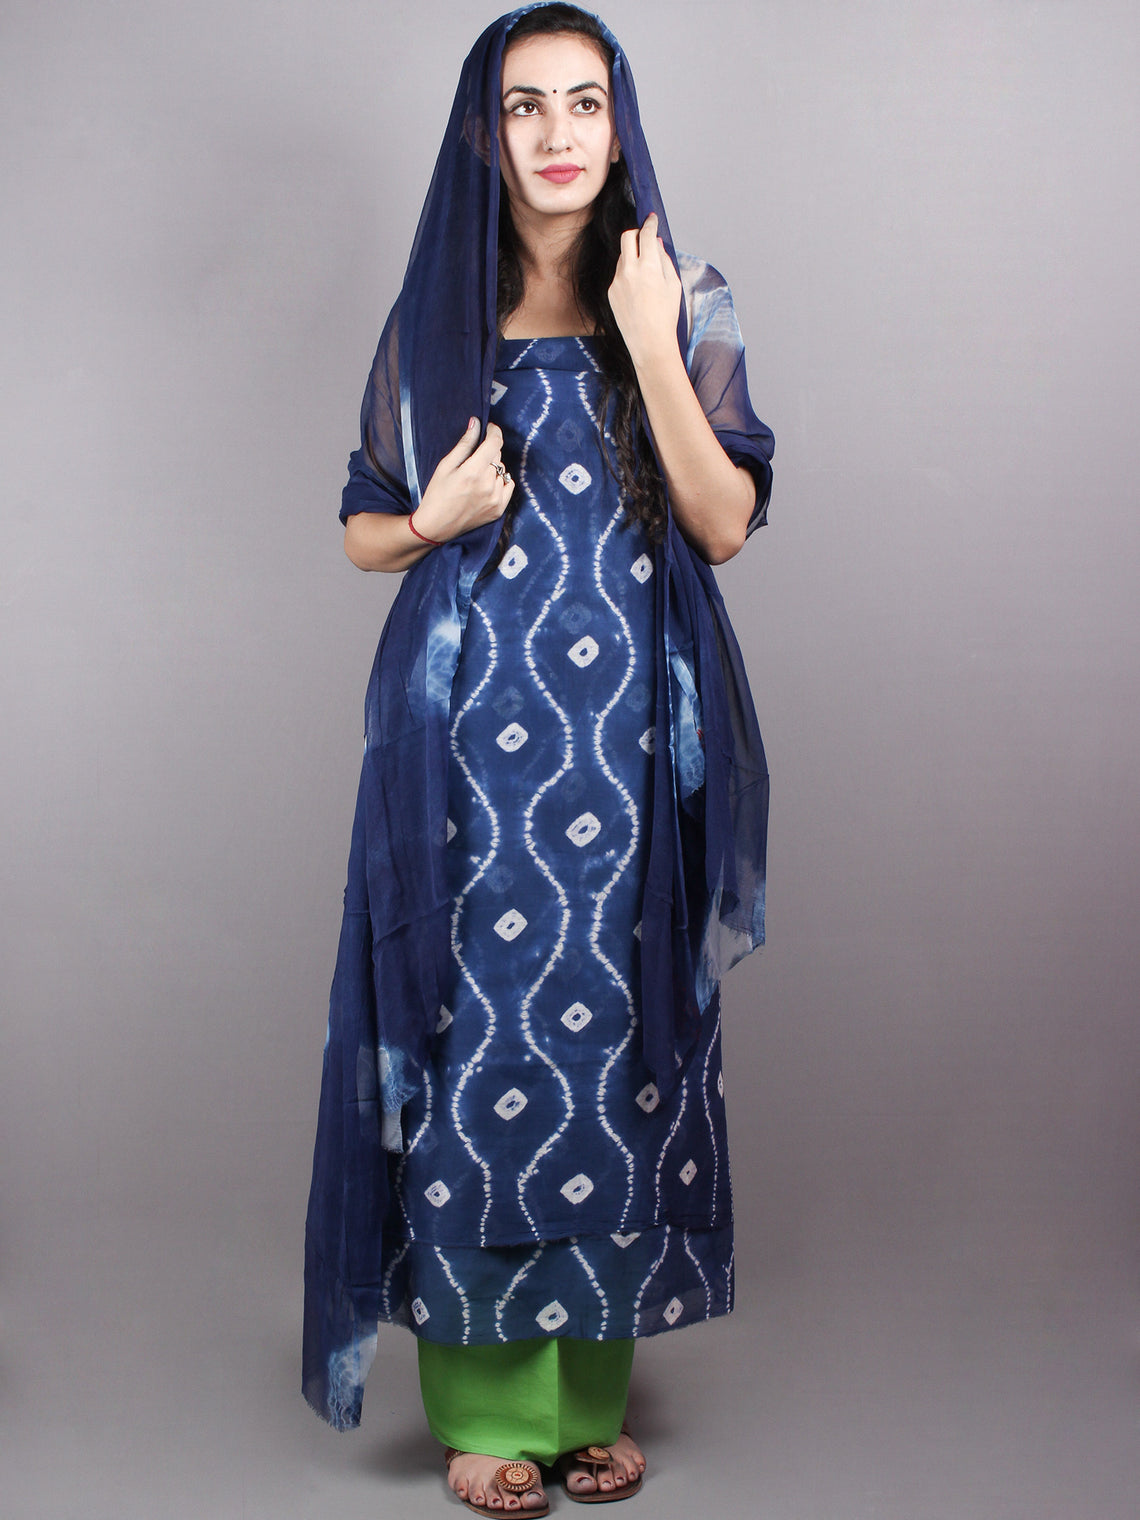 Indigo White Hand Block Printed Chanderi Unstitched Kurta & Shiffon Dupatta With Mint Green Cotton Salwar - S1628021